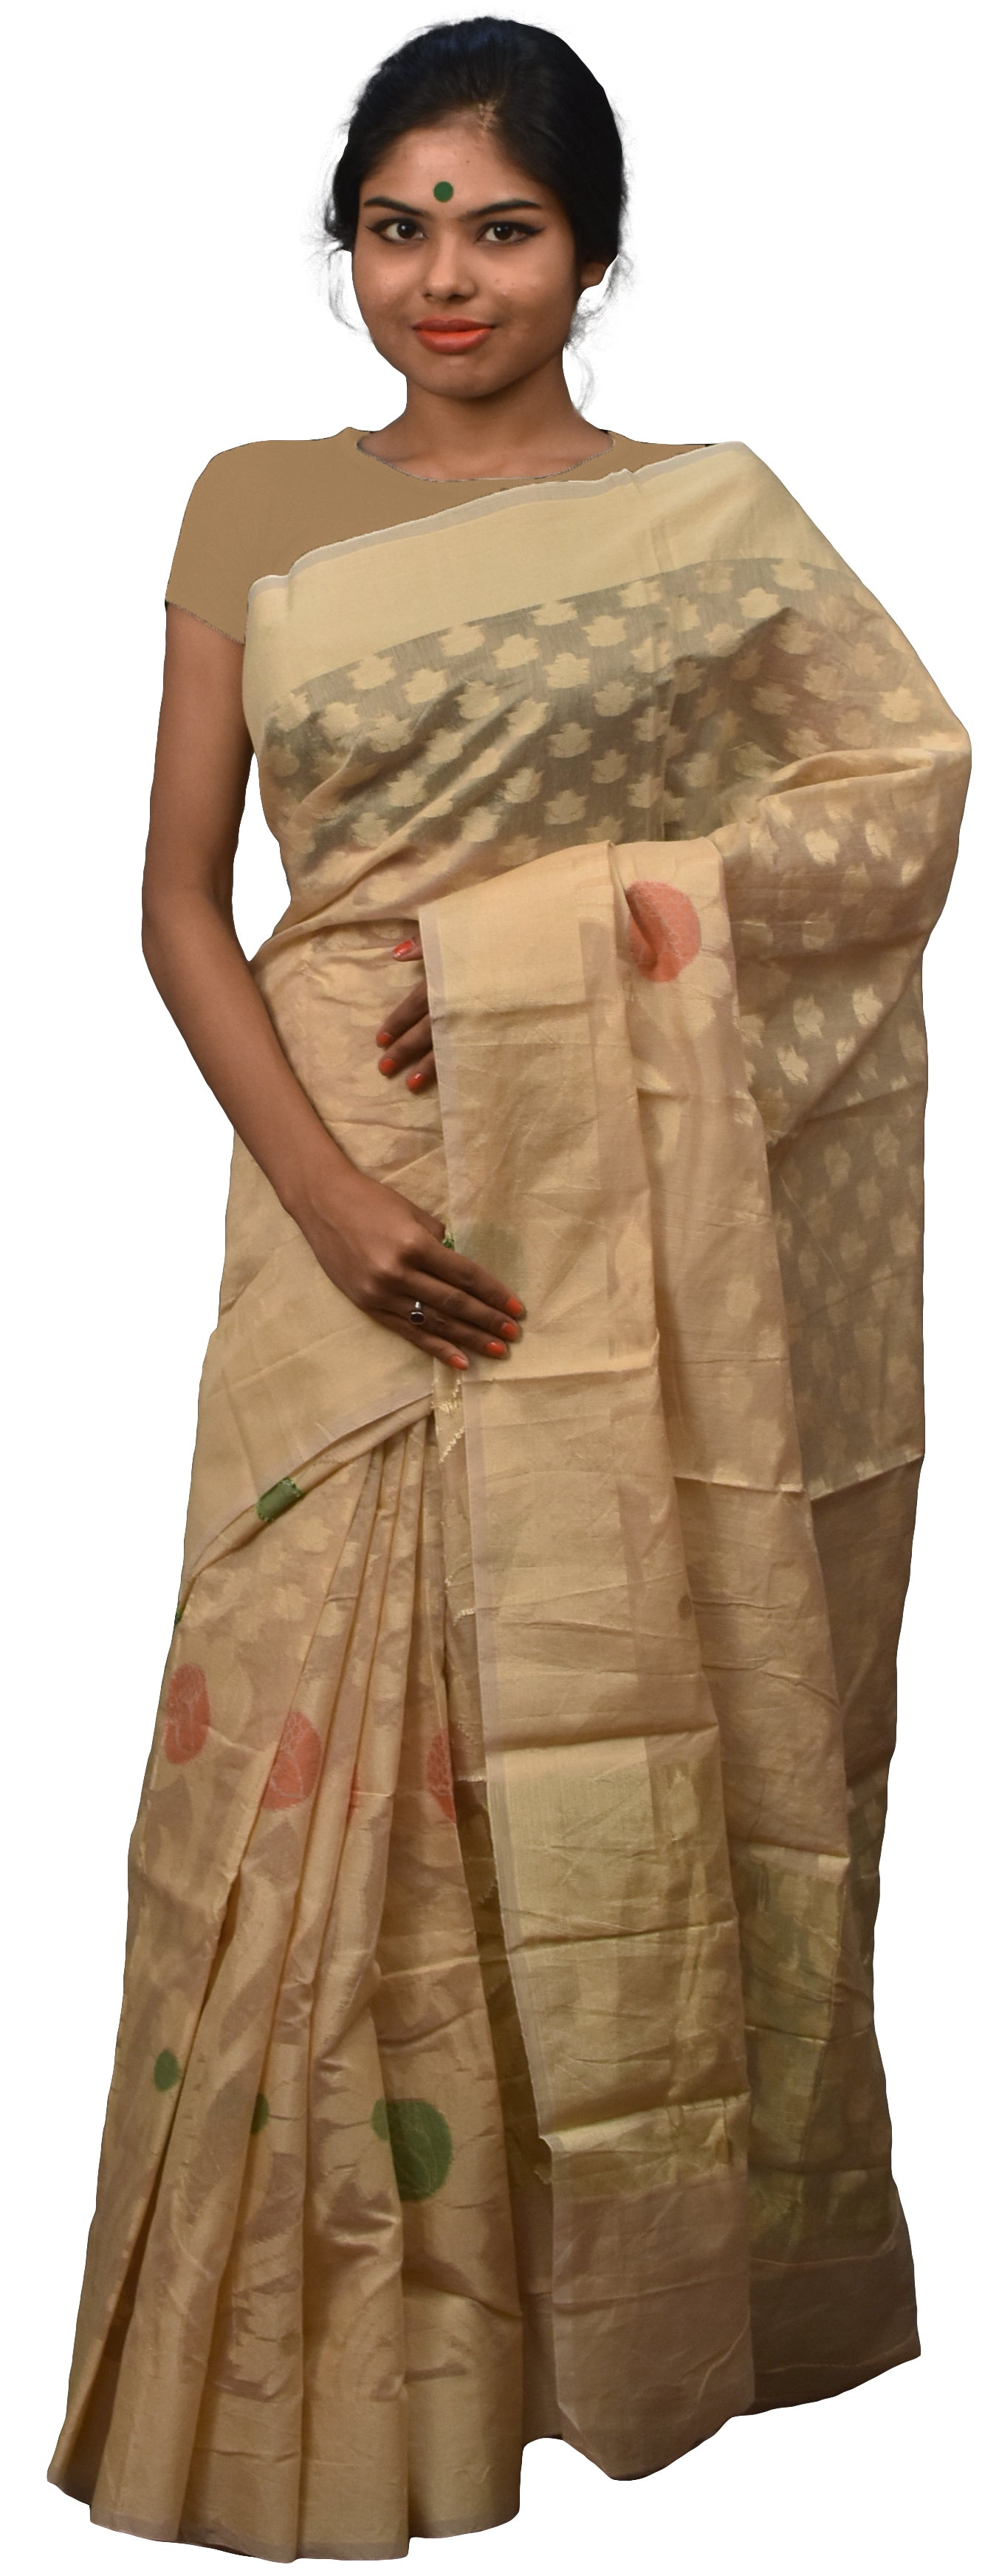 Beige Traditional Designer Wedding Hand Weaven Pure Benarasi Zari Work Saree Sari With Blouse BH1D